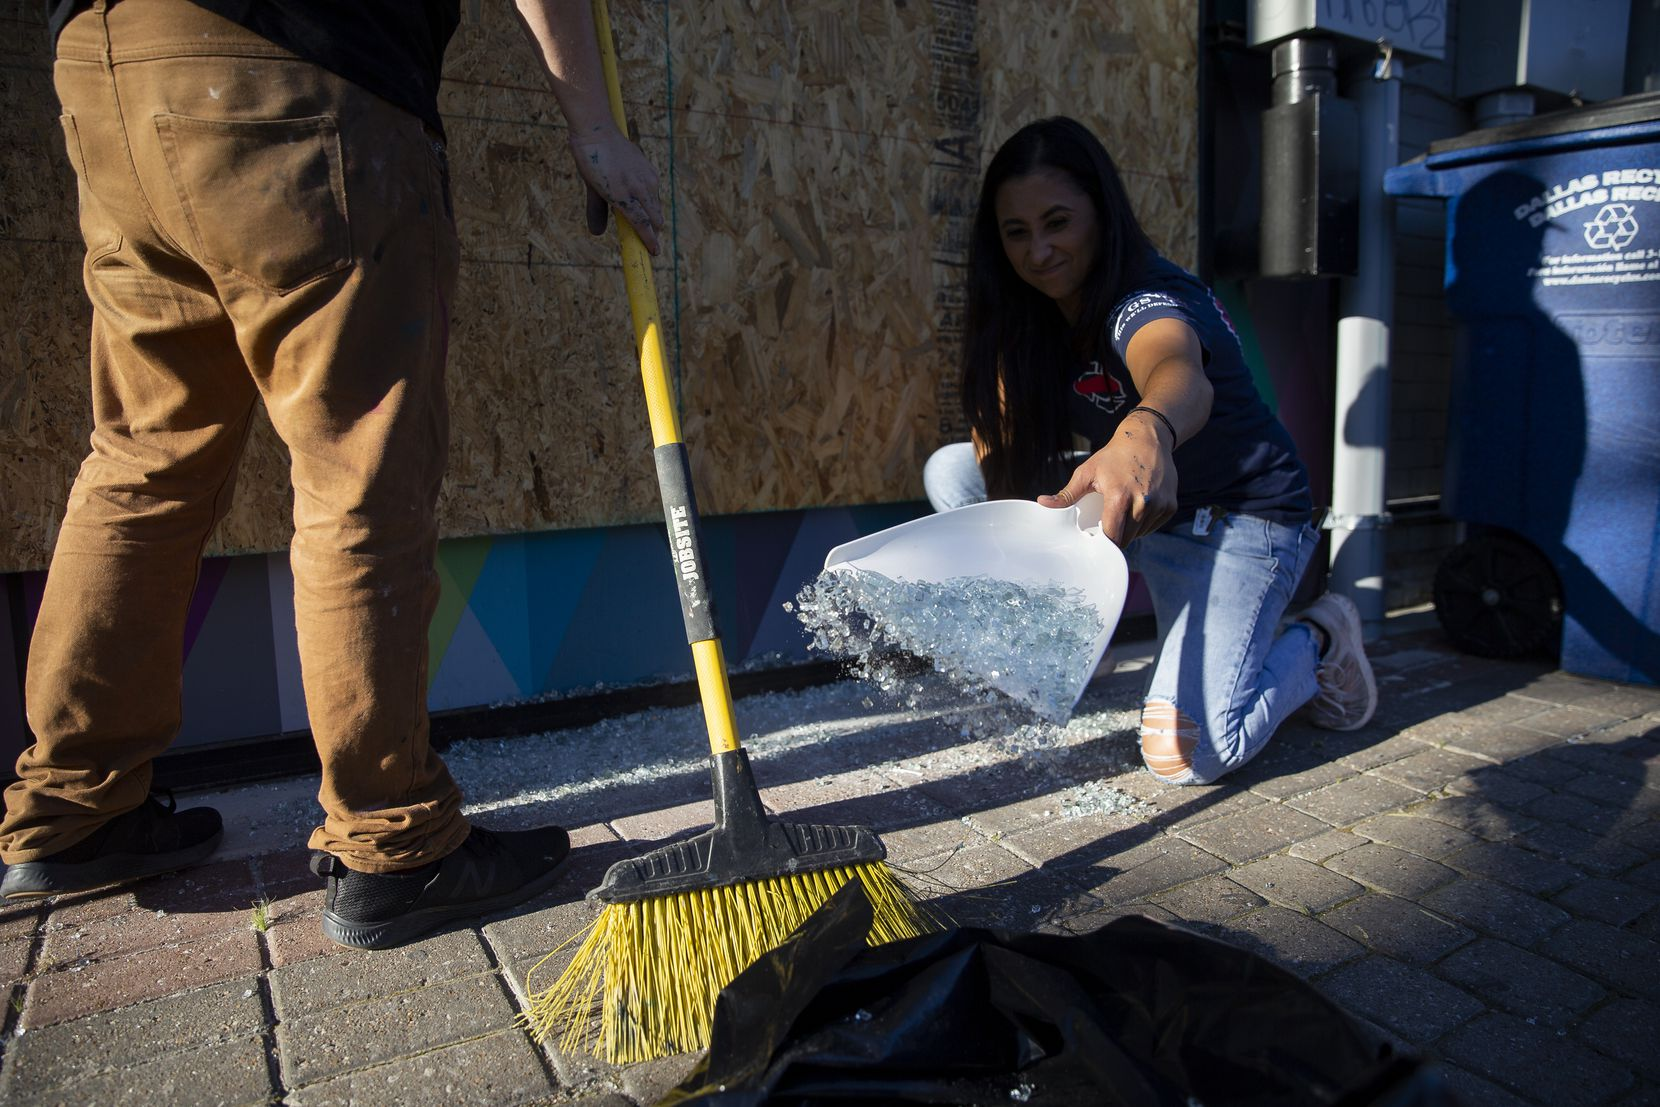 Reese Rodriguez helps clean glass from Upstairs Circus after being damaged during last night's protest, seen Saturday morning, May 30, 2020 in Dallas.